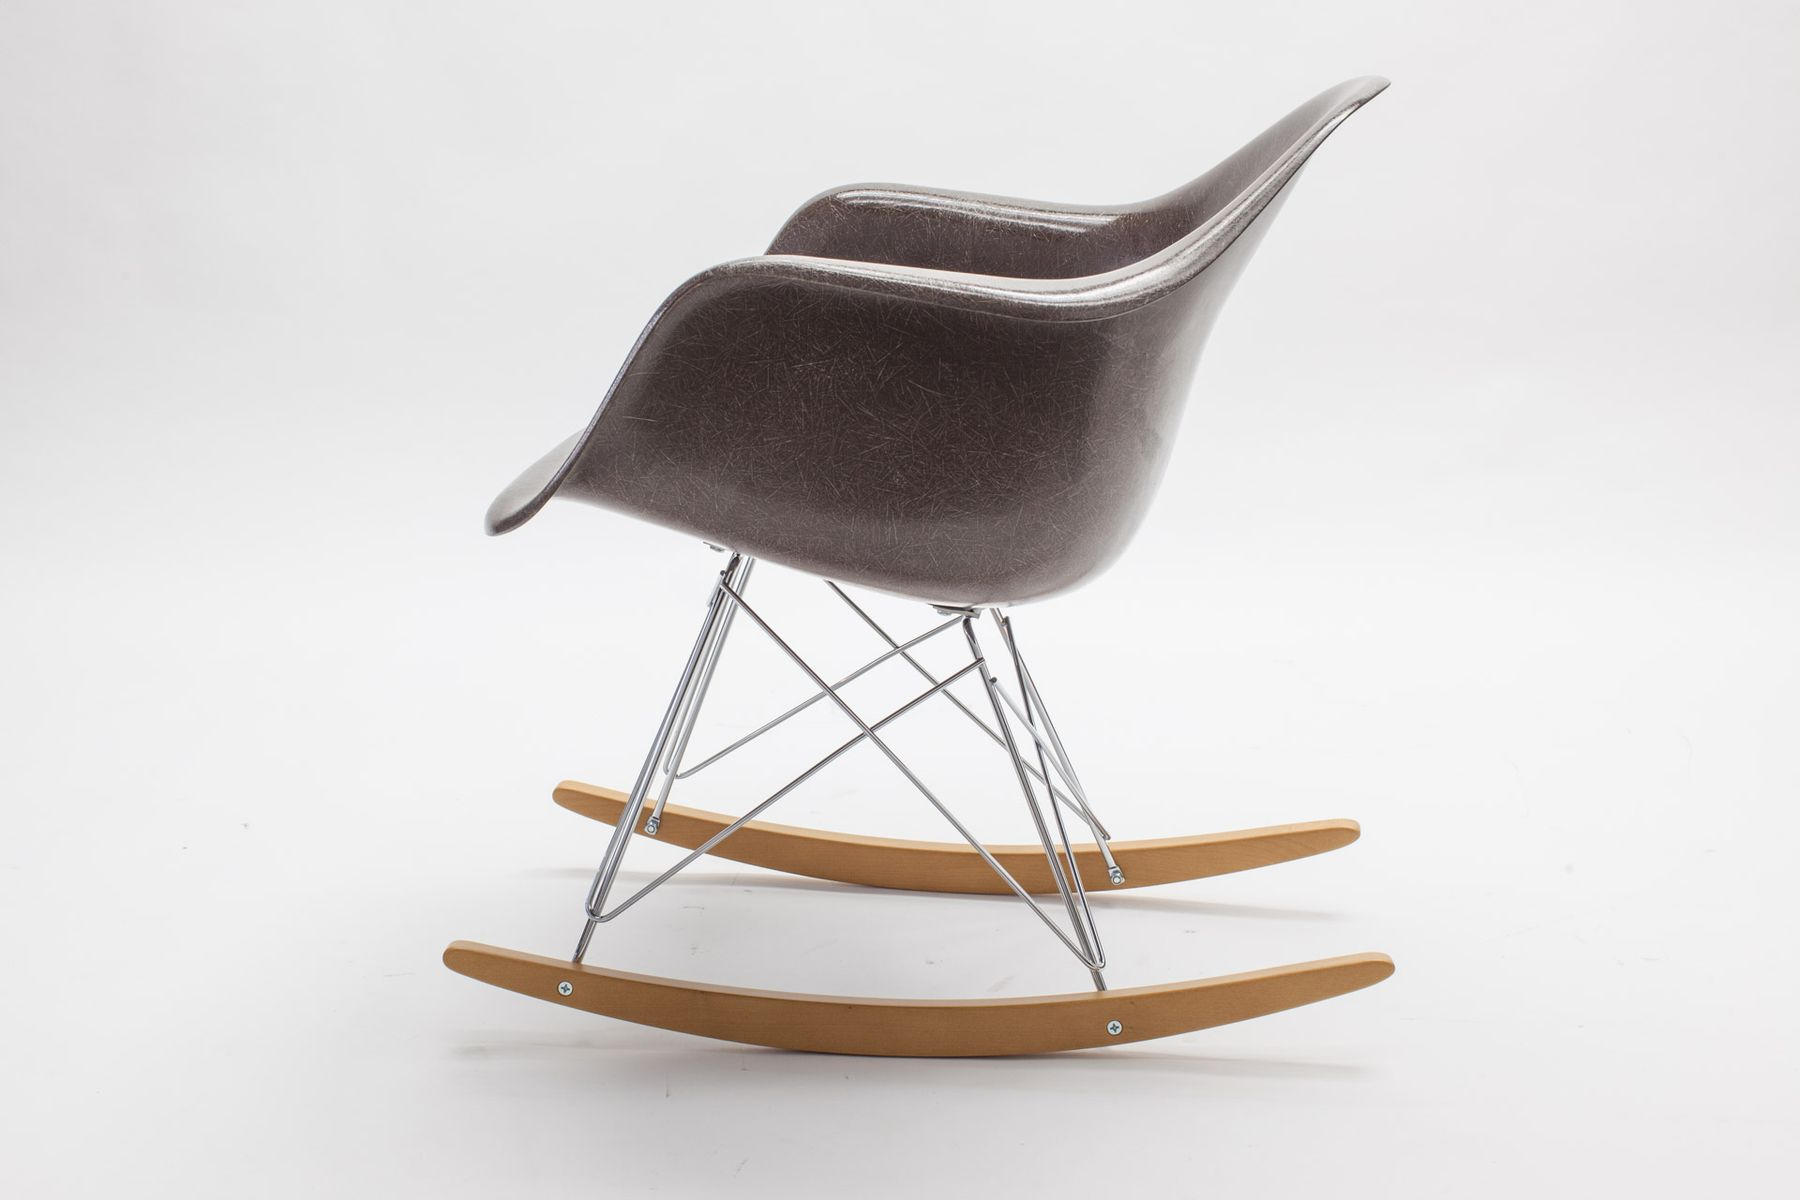 Fiberglass rar rocking chair by charles eames for vitra for Schaukelstuhl sale